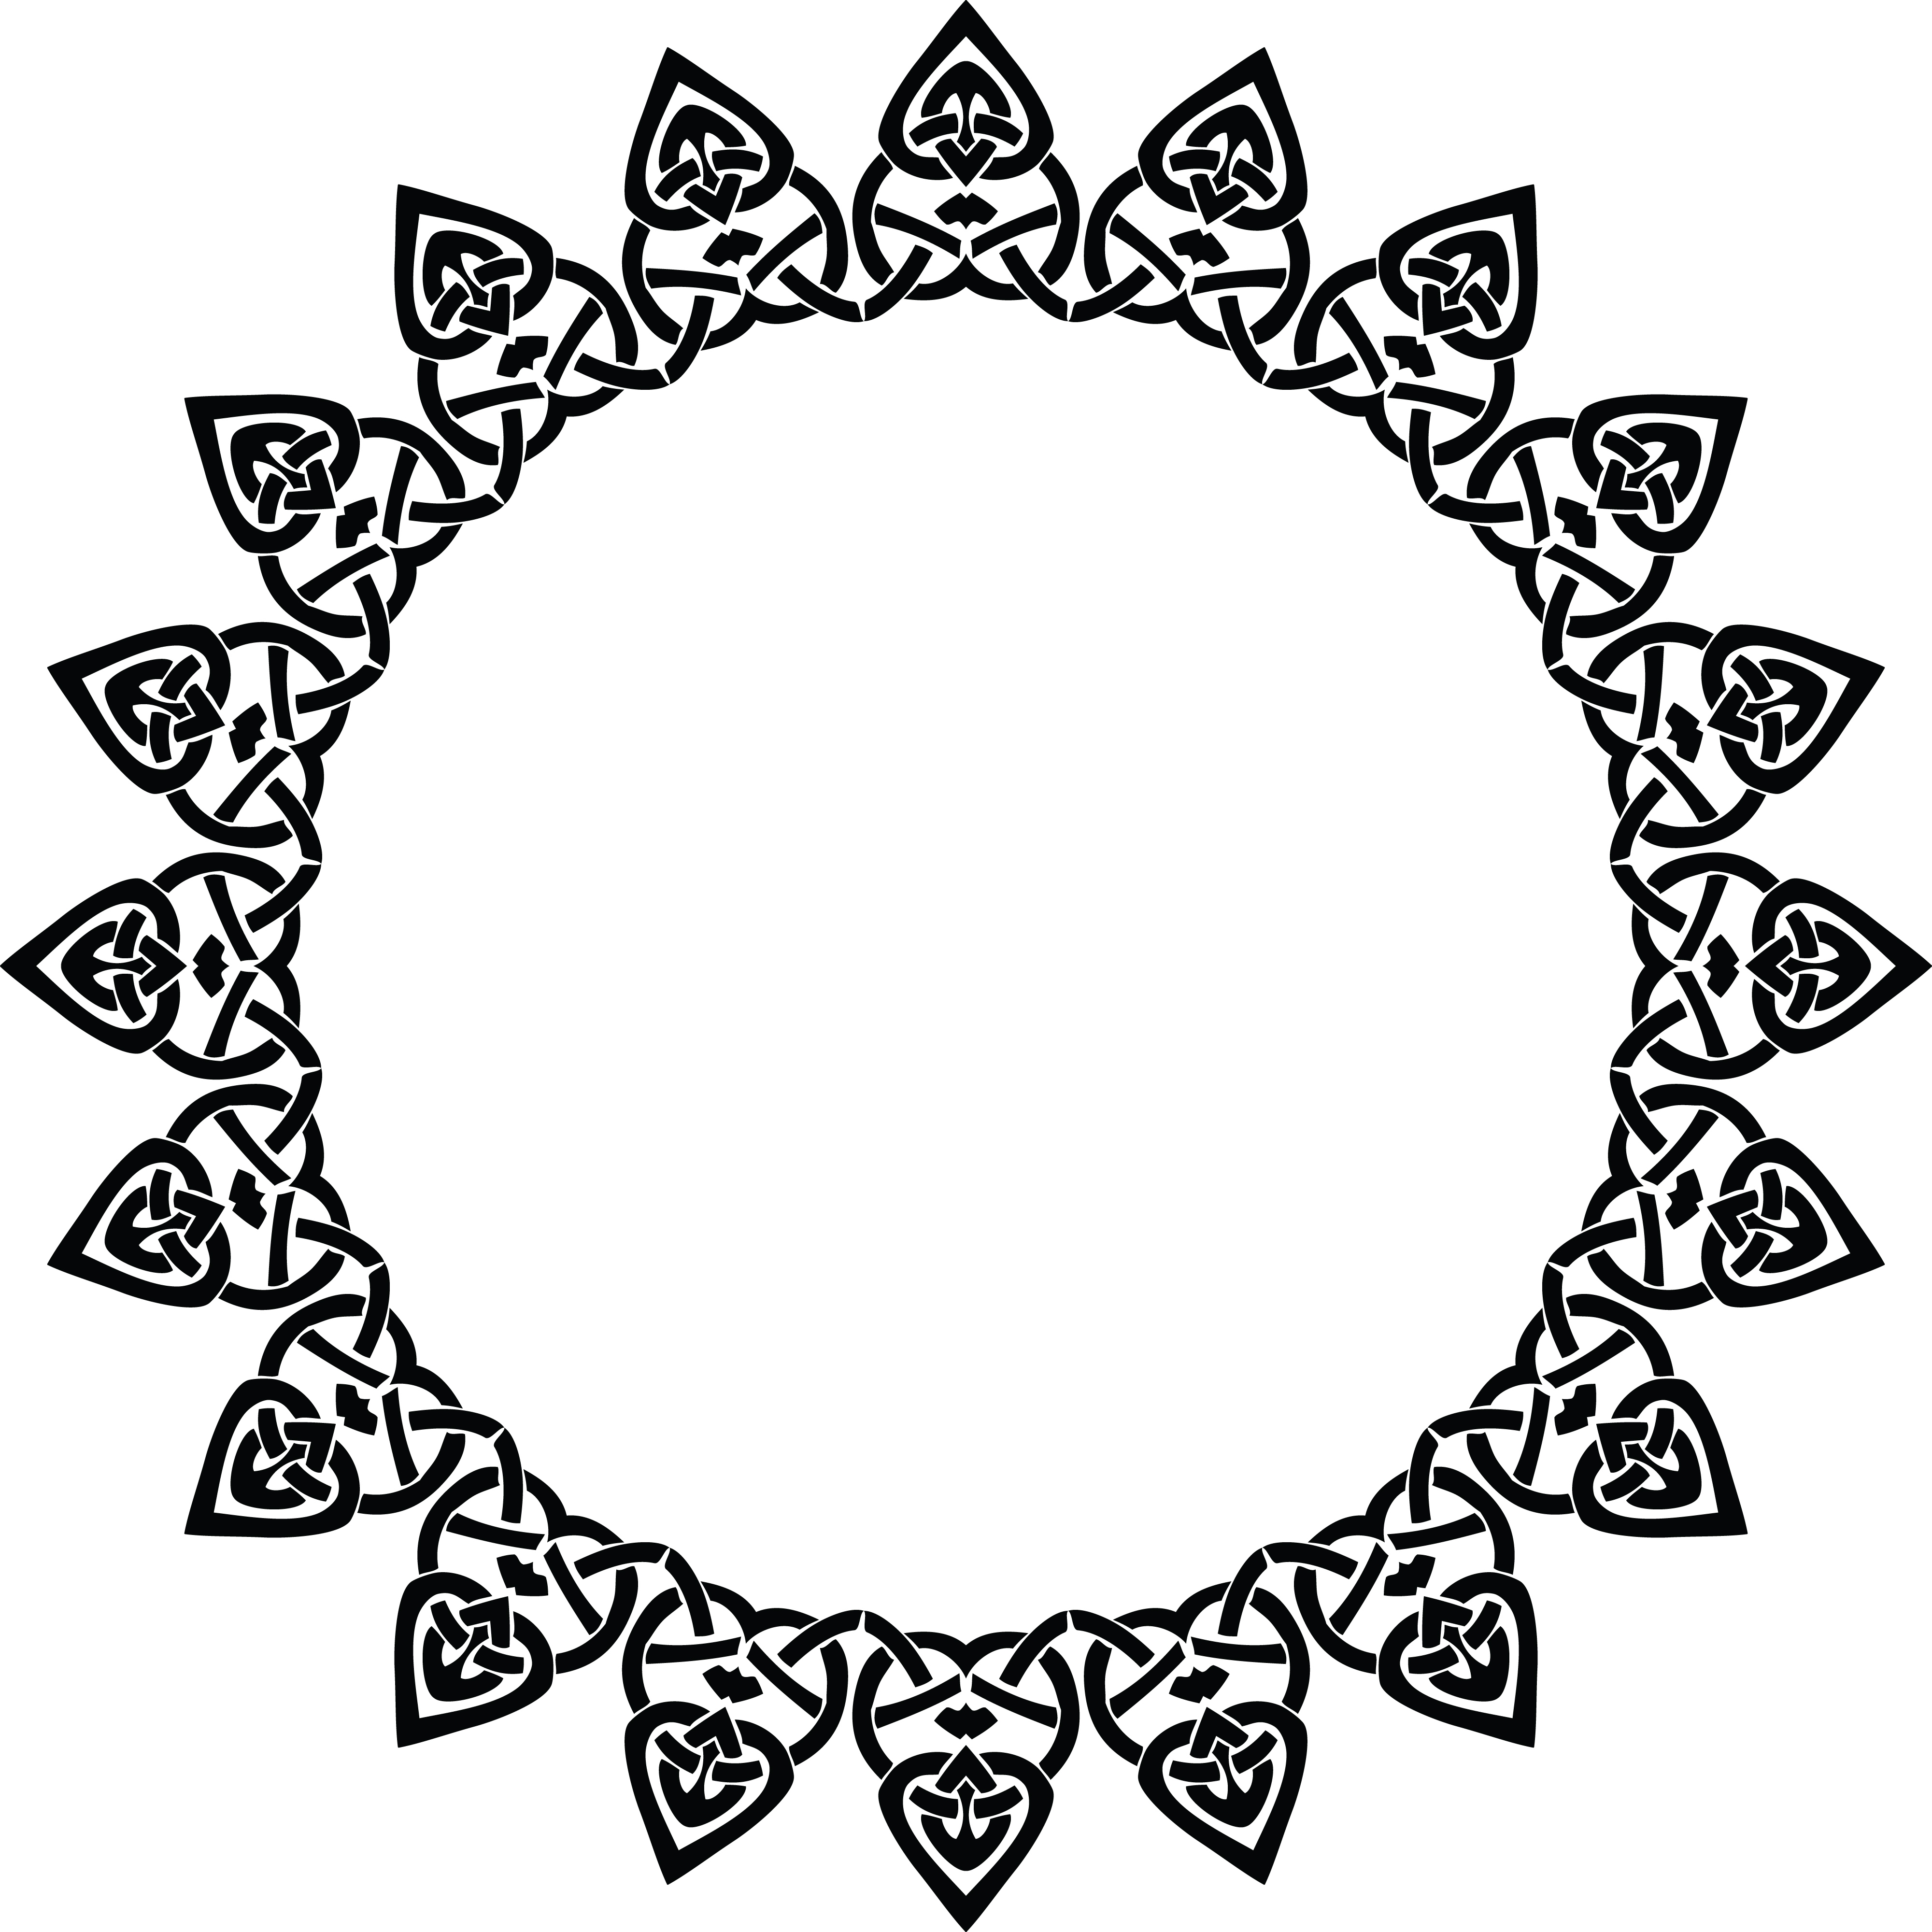 Free Clipart Of A Celtic Round Frame Border Design Element In Black